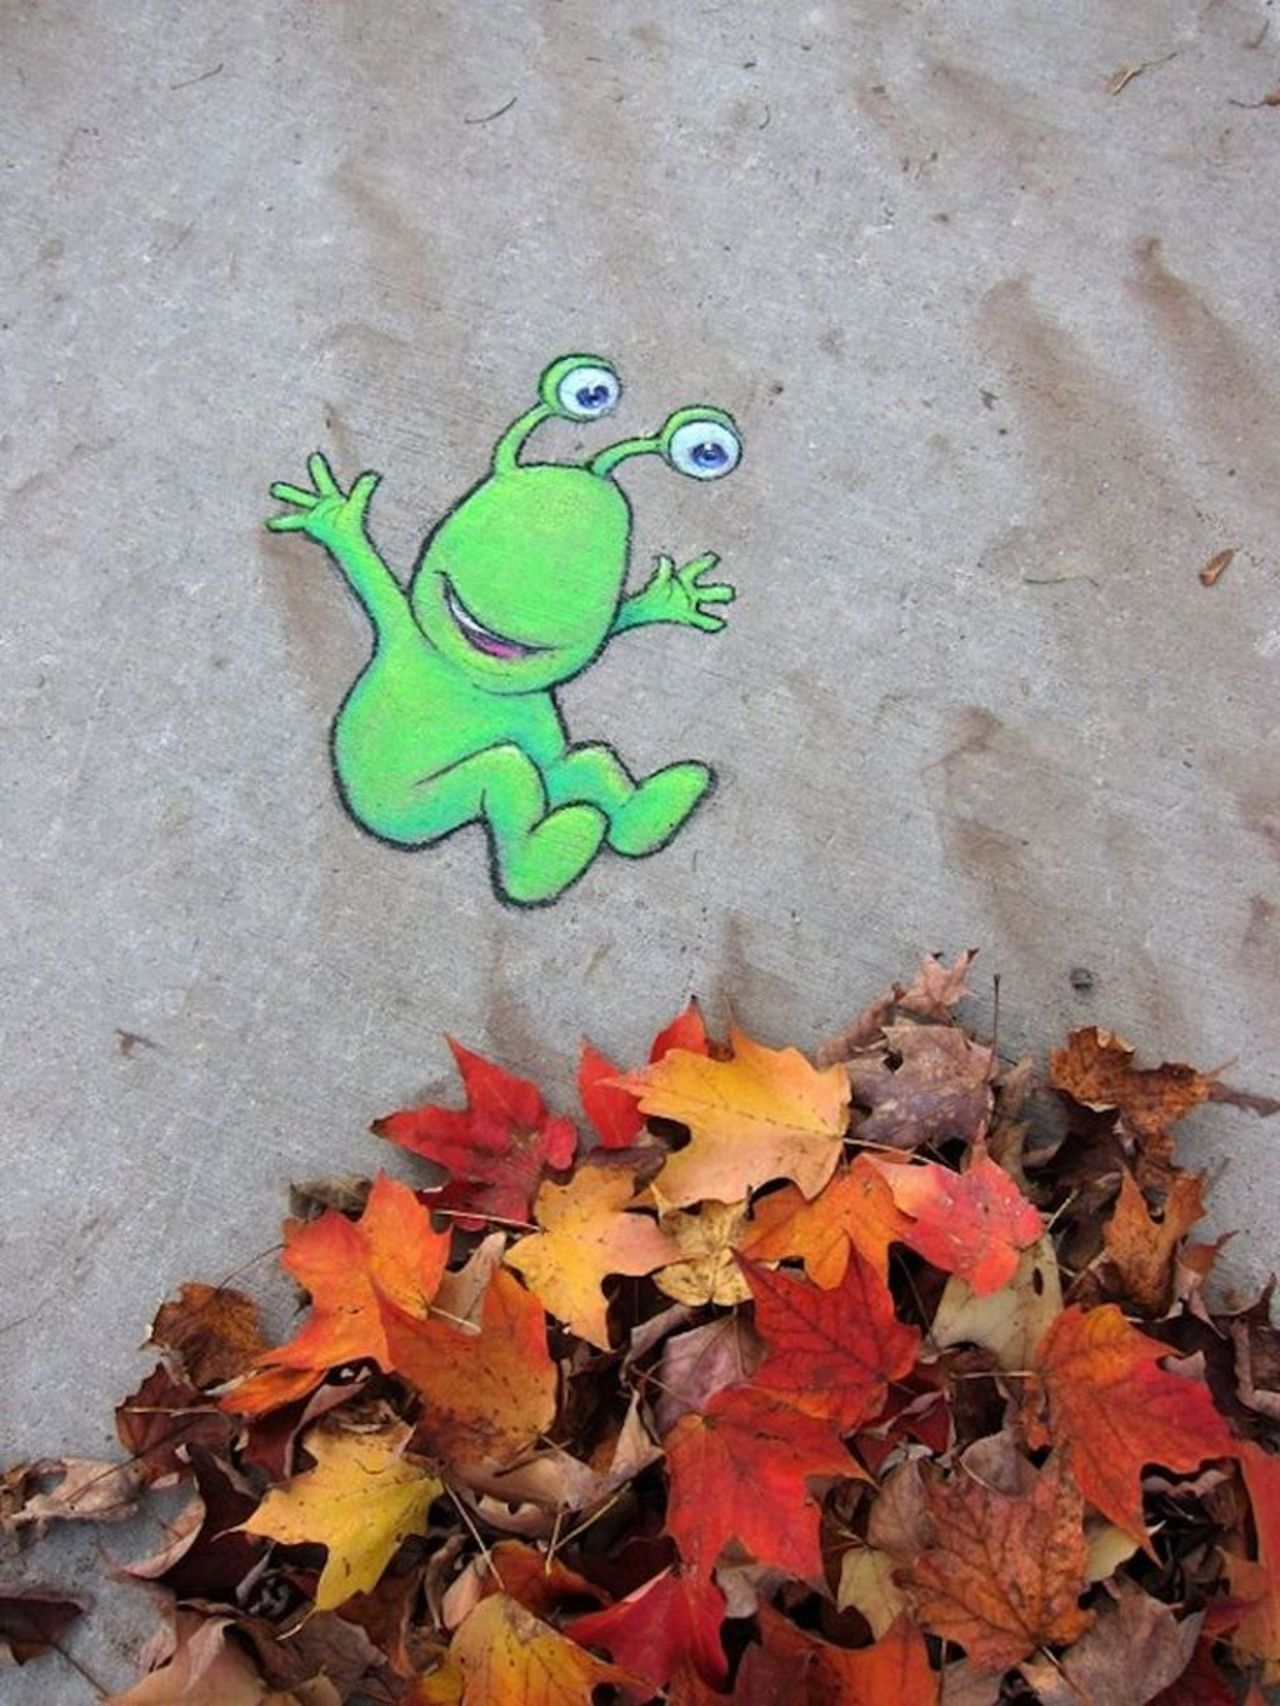 #DavidZinn #Streetart #FallColors Actual real fallen leaves are included in his pieces, around this time of year. https://t.co/GYEudFWd6R